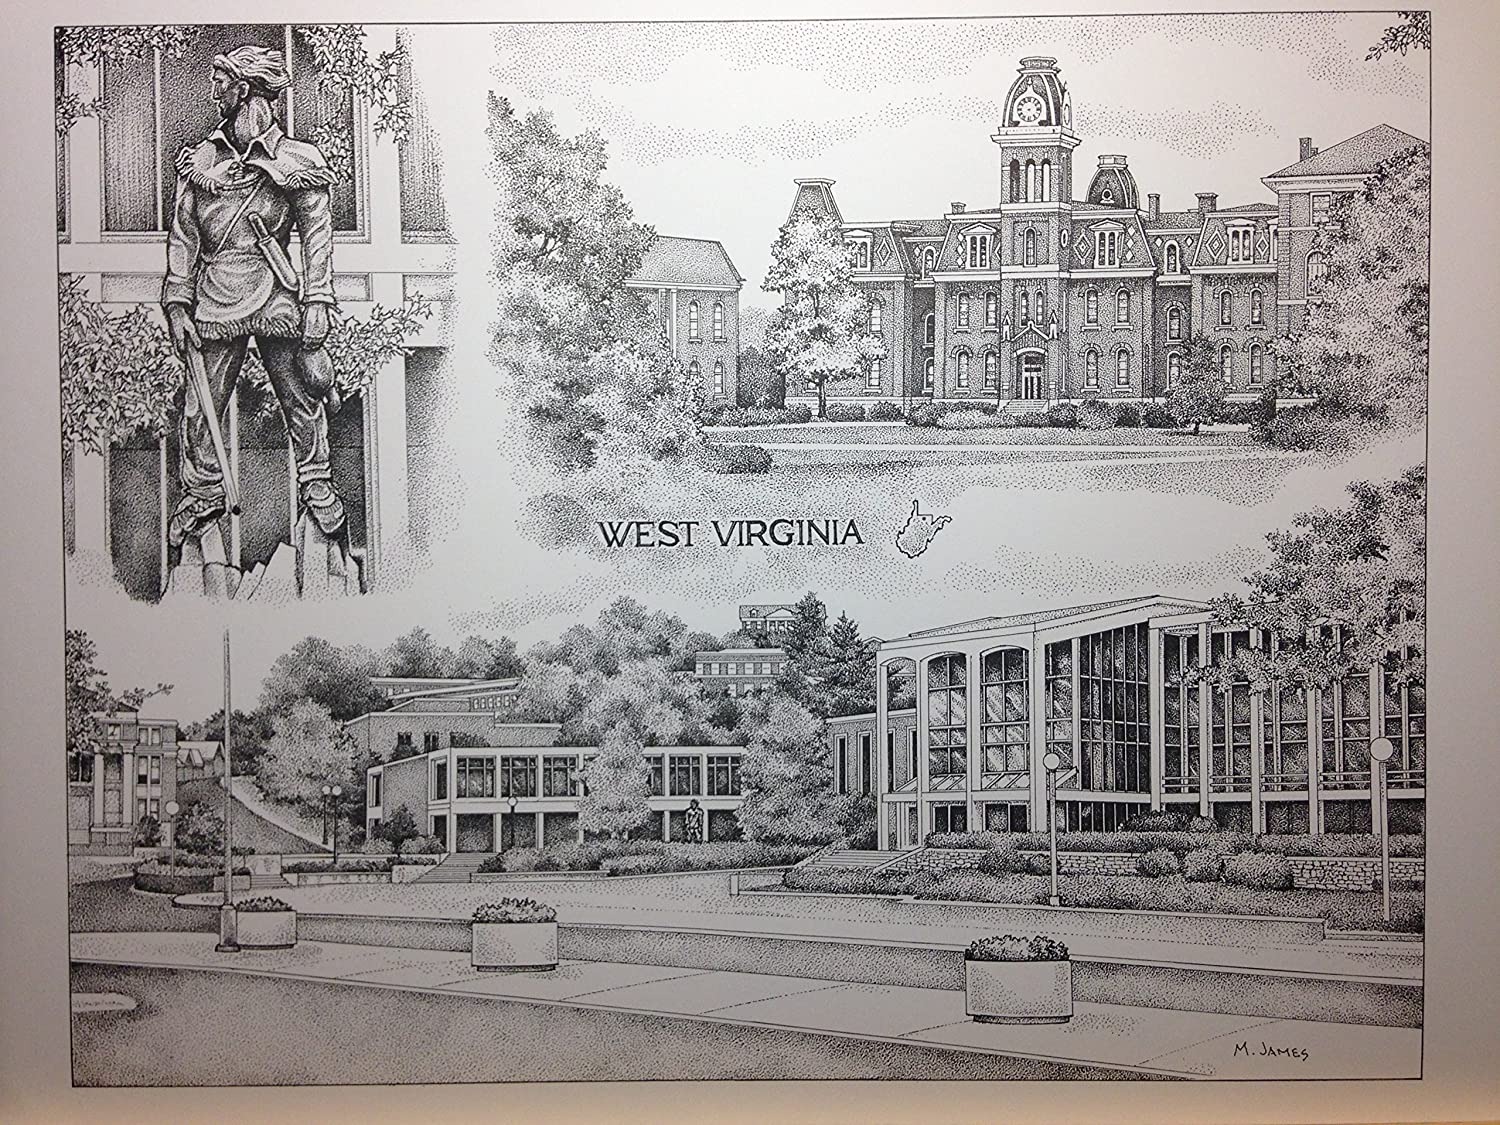 West Virginia University 12x16 collage print